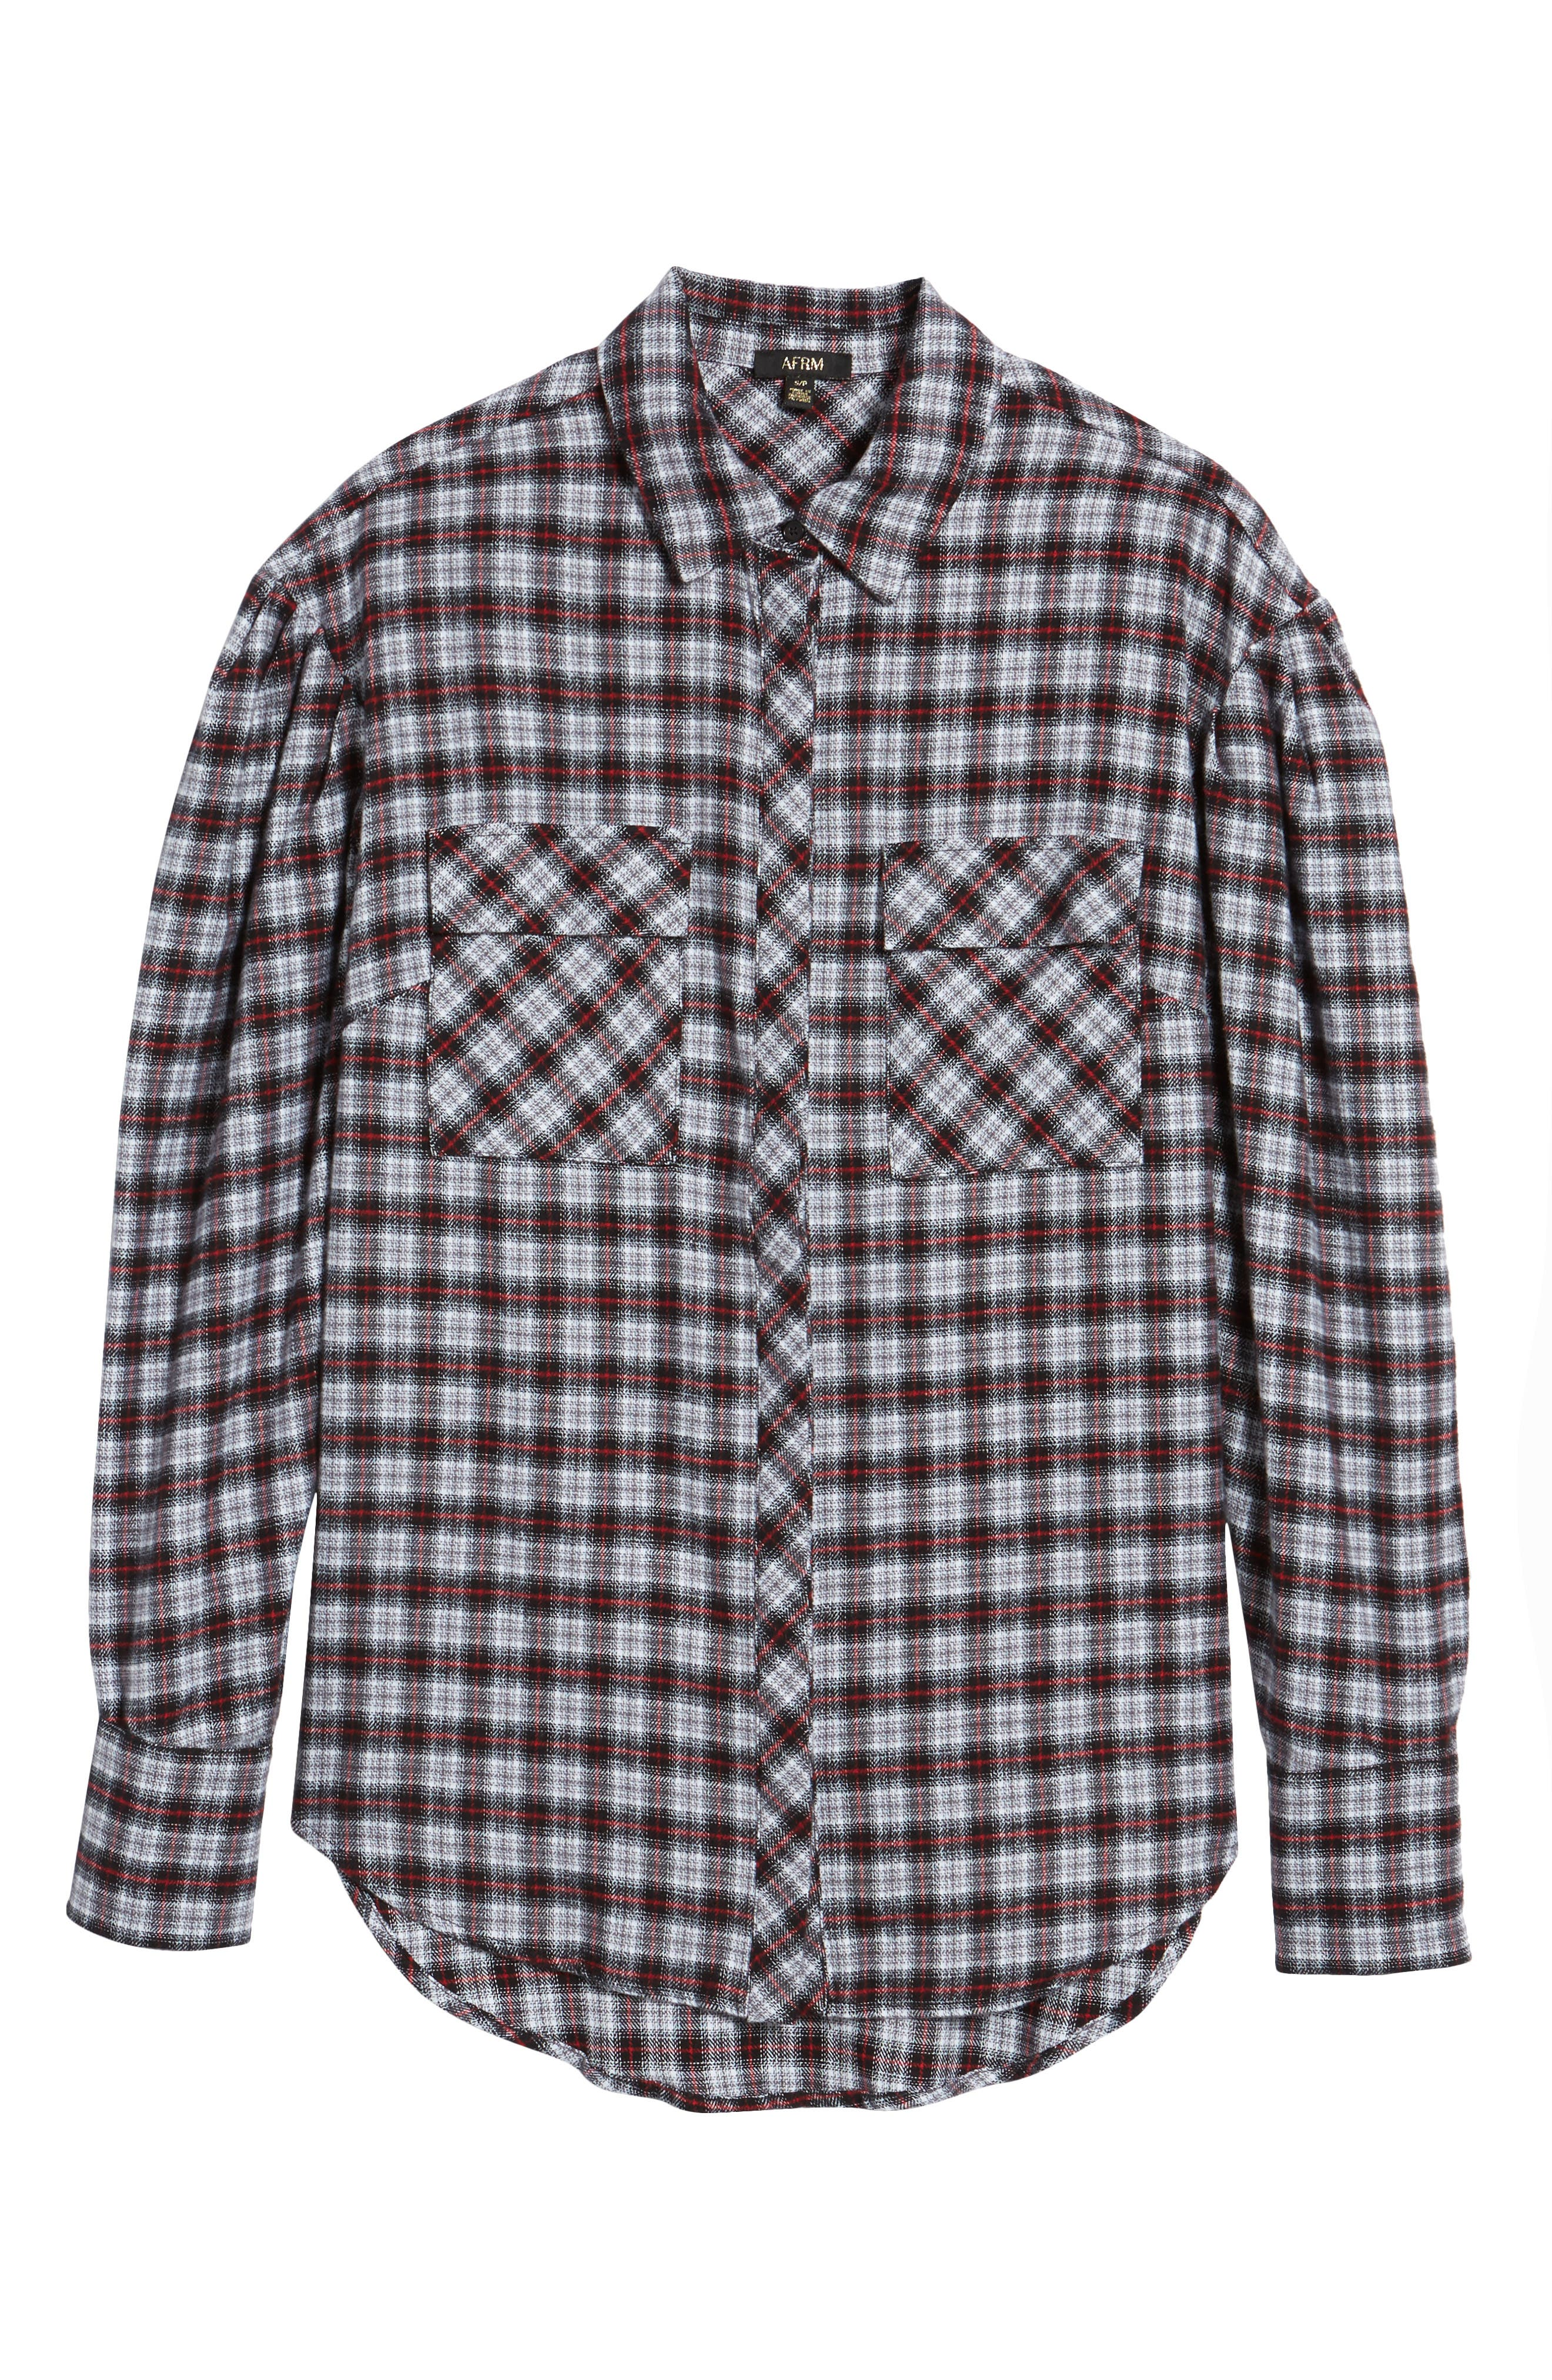 Victoria Oversize Flannel Shirt,                             Alternate thumbnail 6, color,                             001